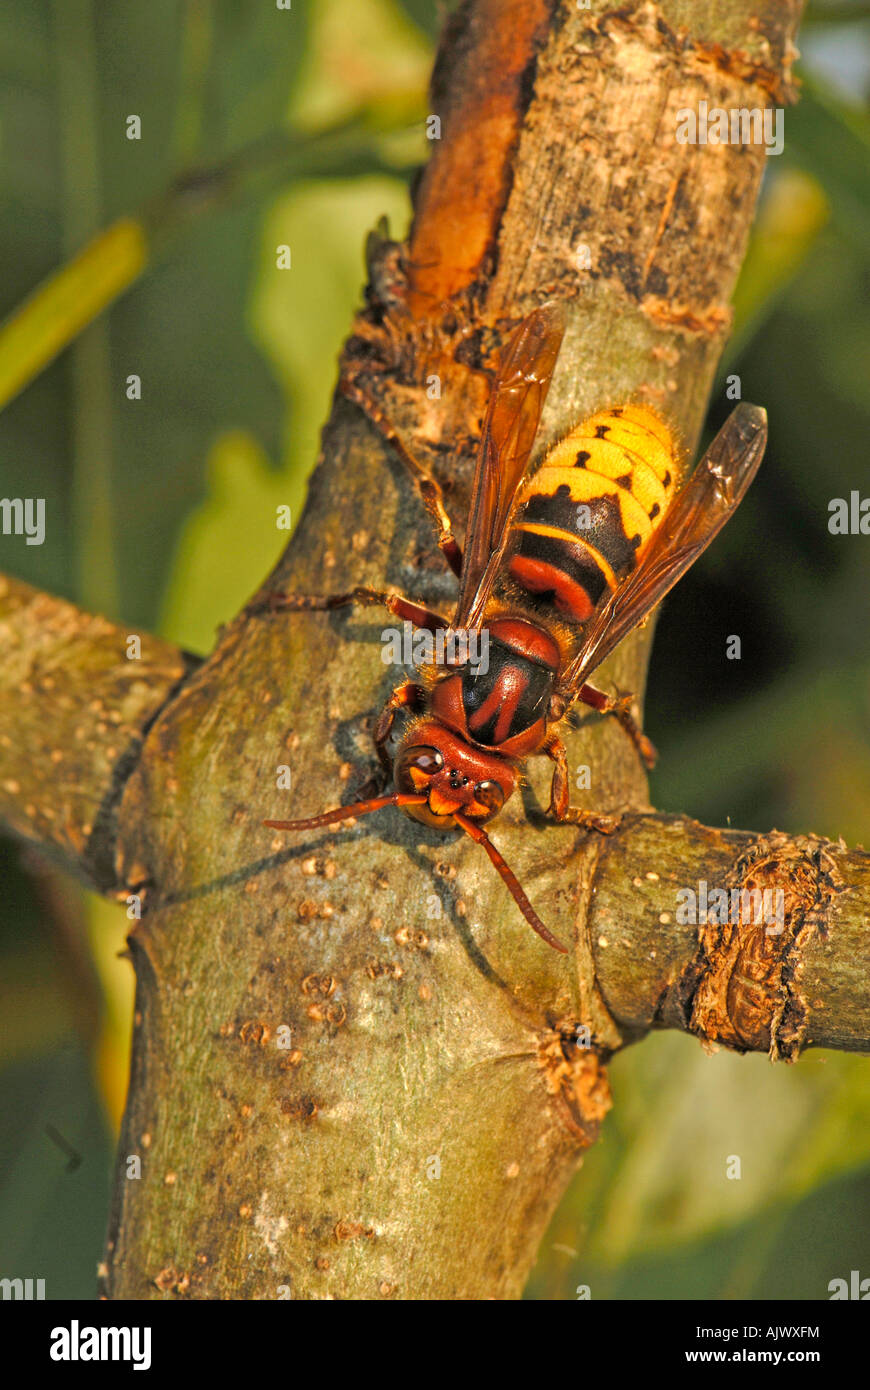 Sap Feeding Insects Stock Photos & Sap Feeding Insects Stock